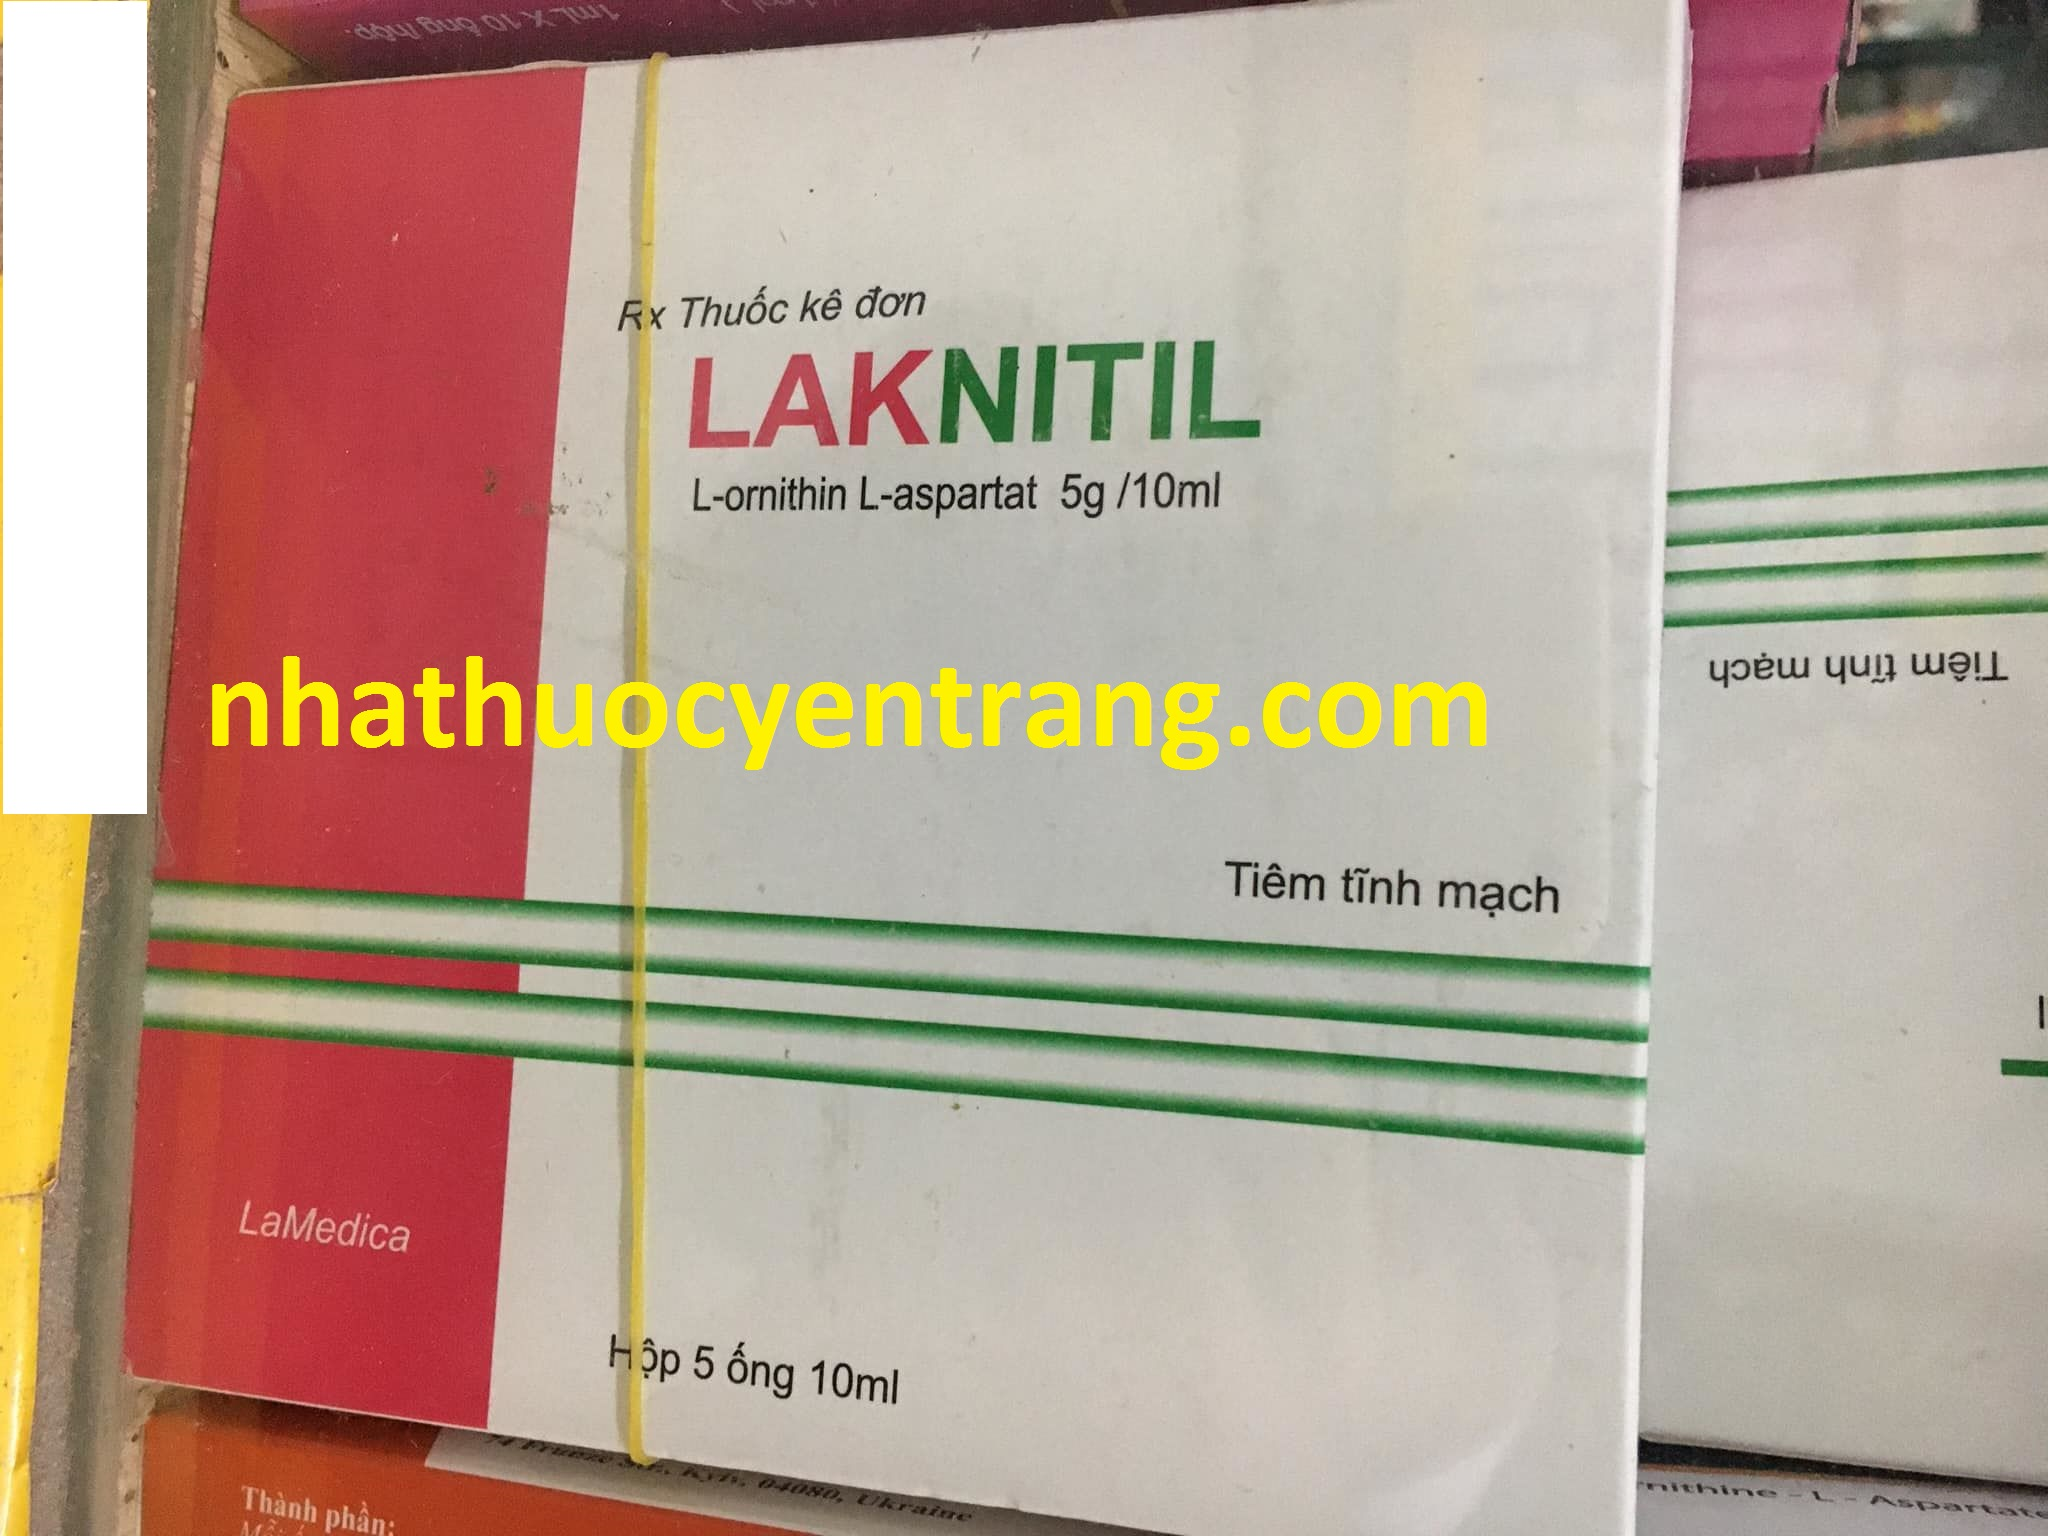 Laknitil 5g/10ml